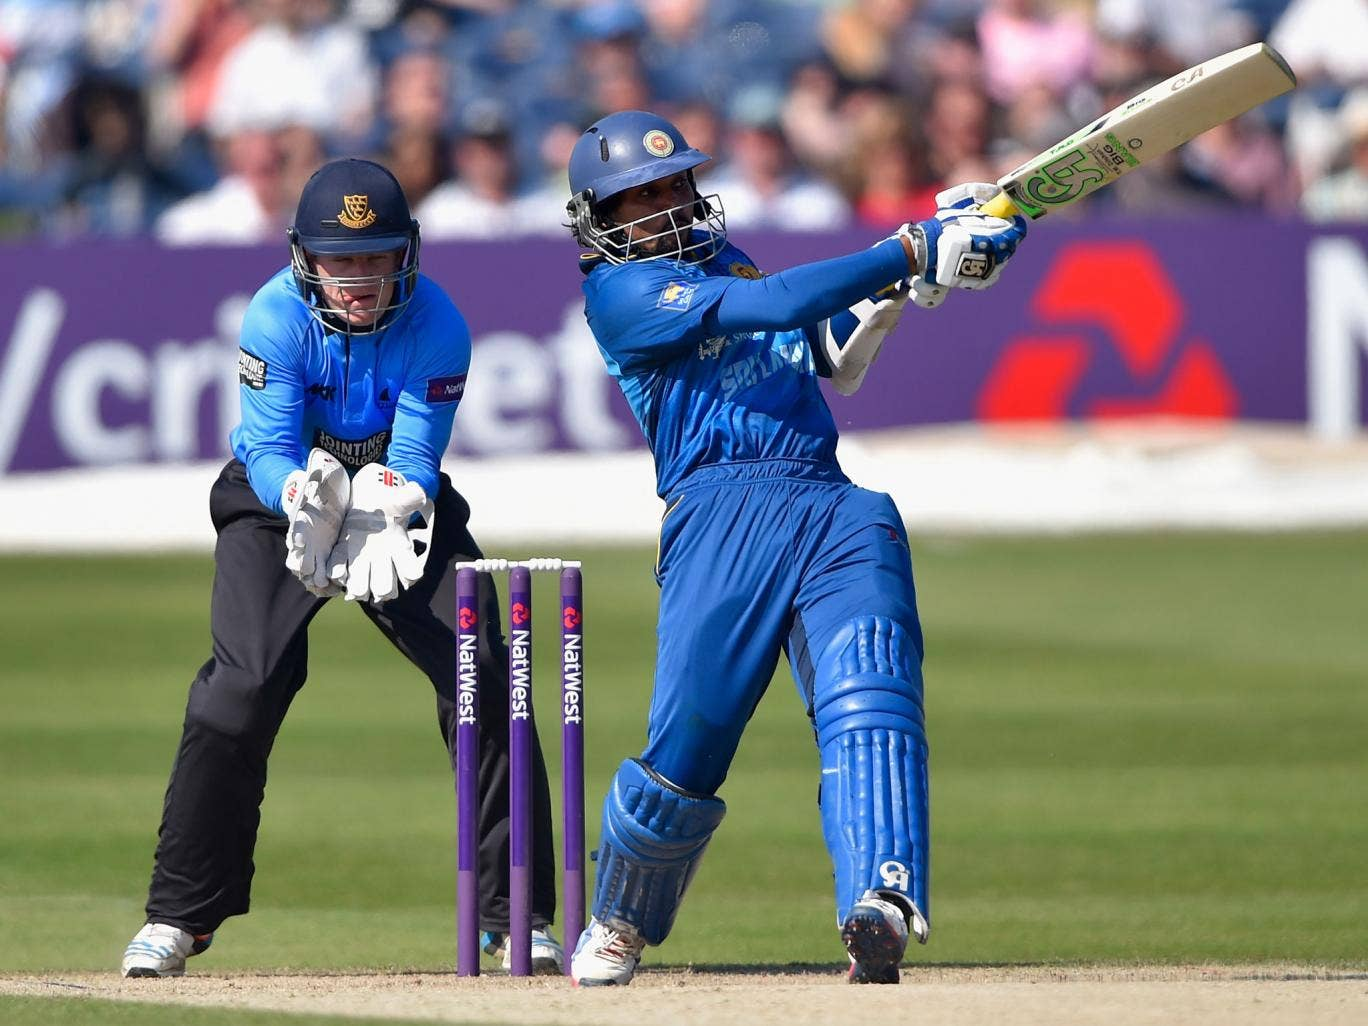 Tillekeratne Dilshan of Sri lanka smashes a boundary as wicketkeeper Ben Brown of Sussex looks on